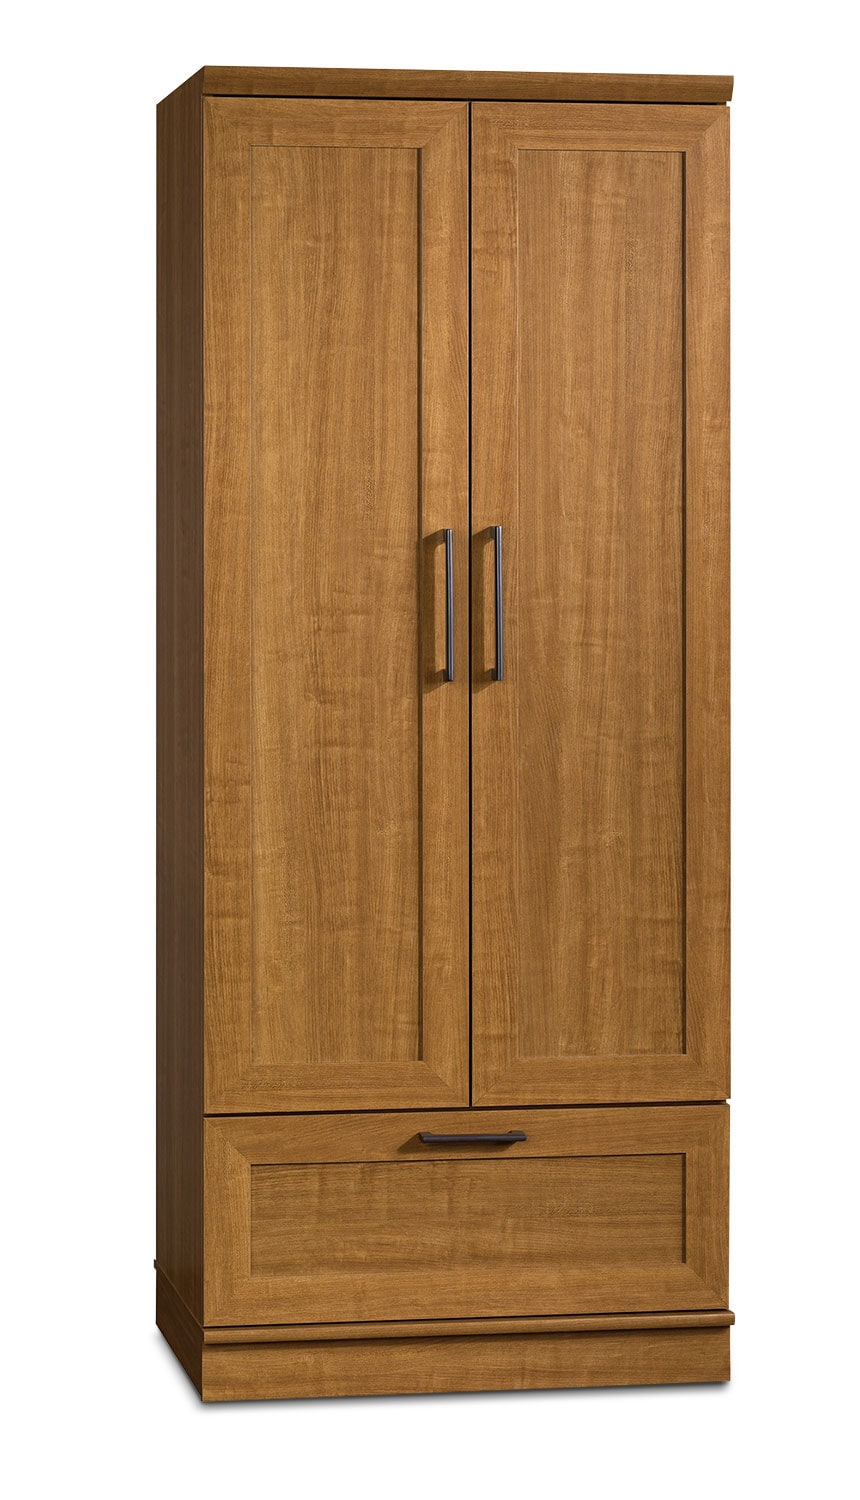 "Accent and Occasional Furniture - Franklin 29"" Wardrobe Storage Cabinet"